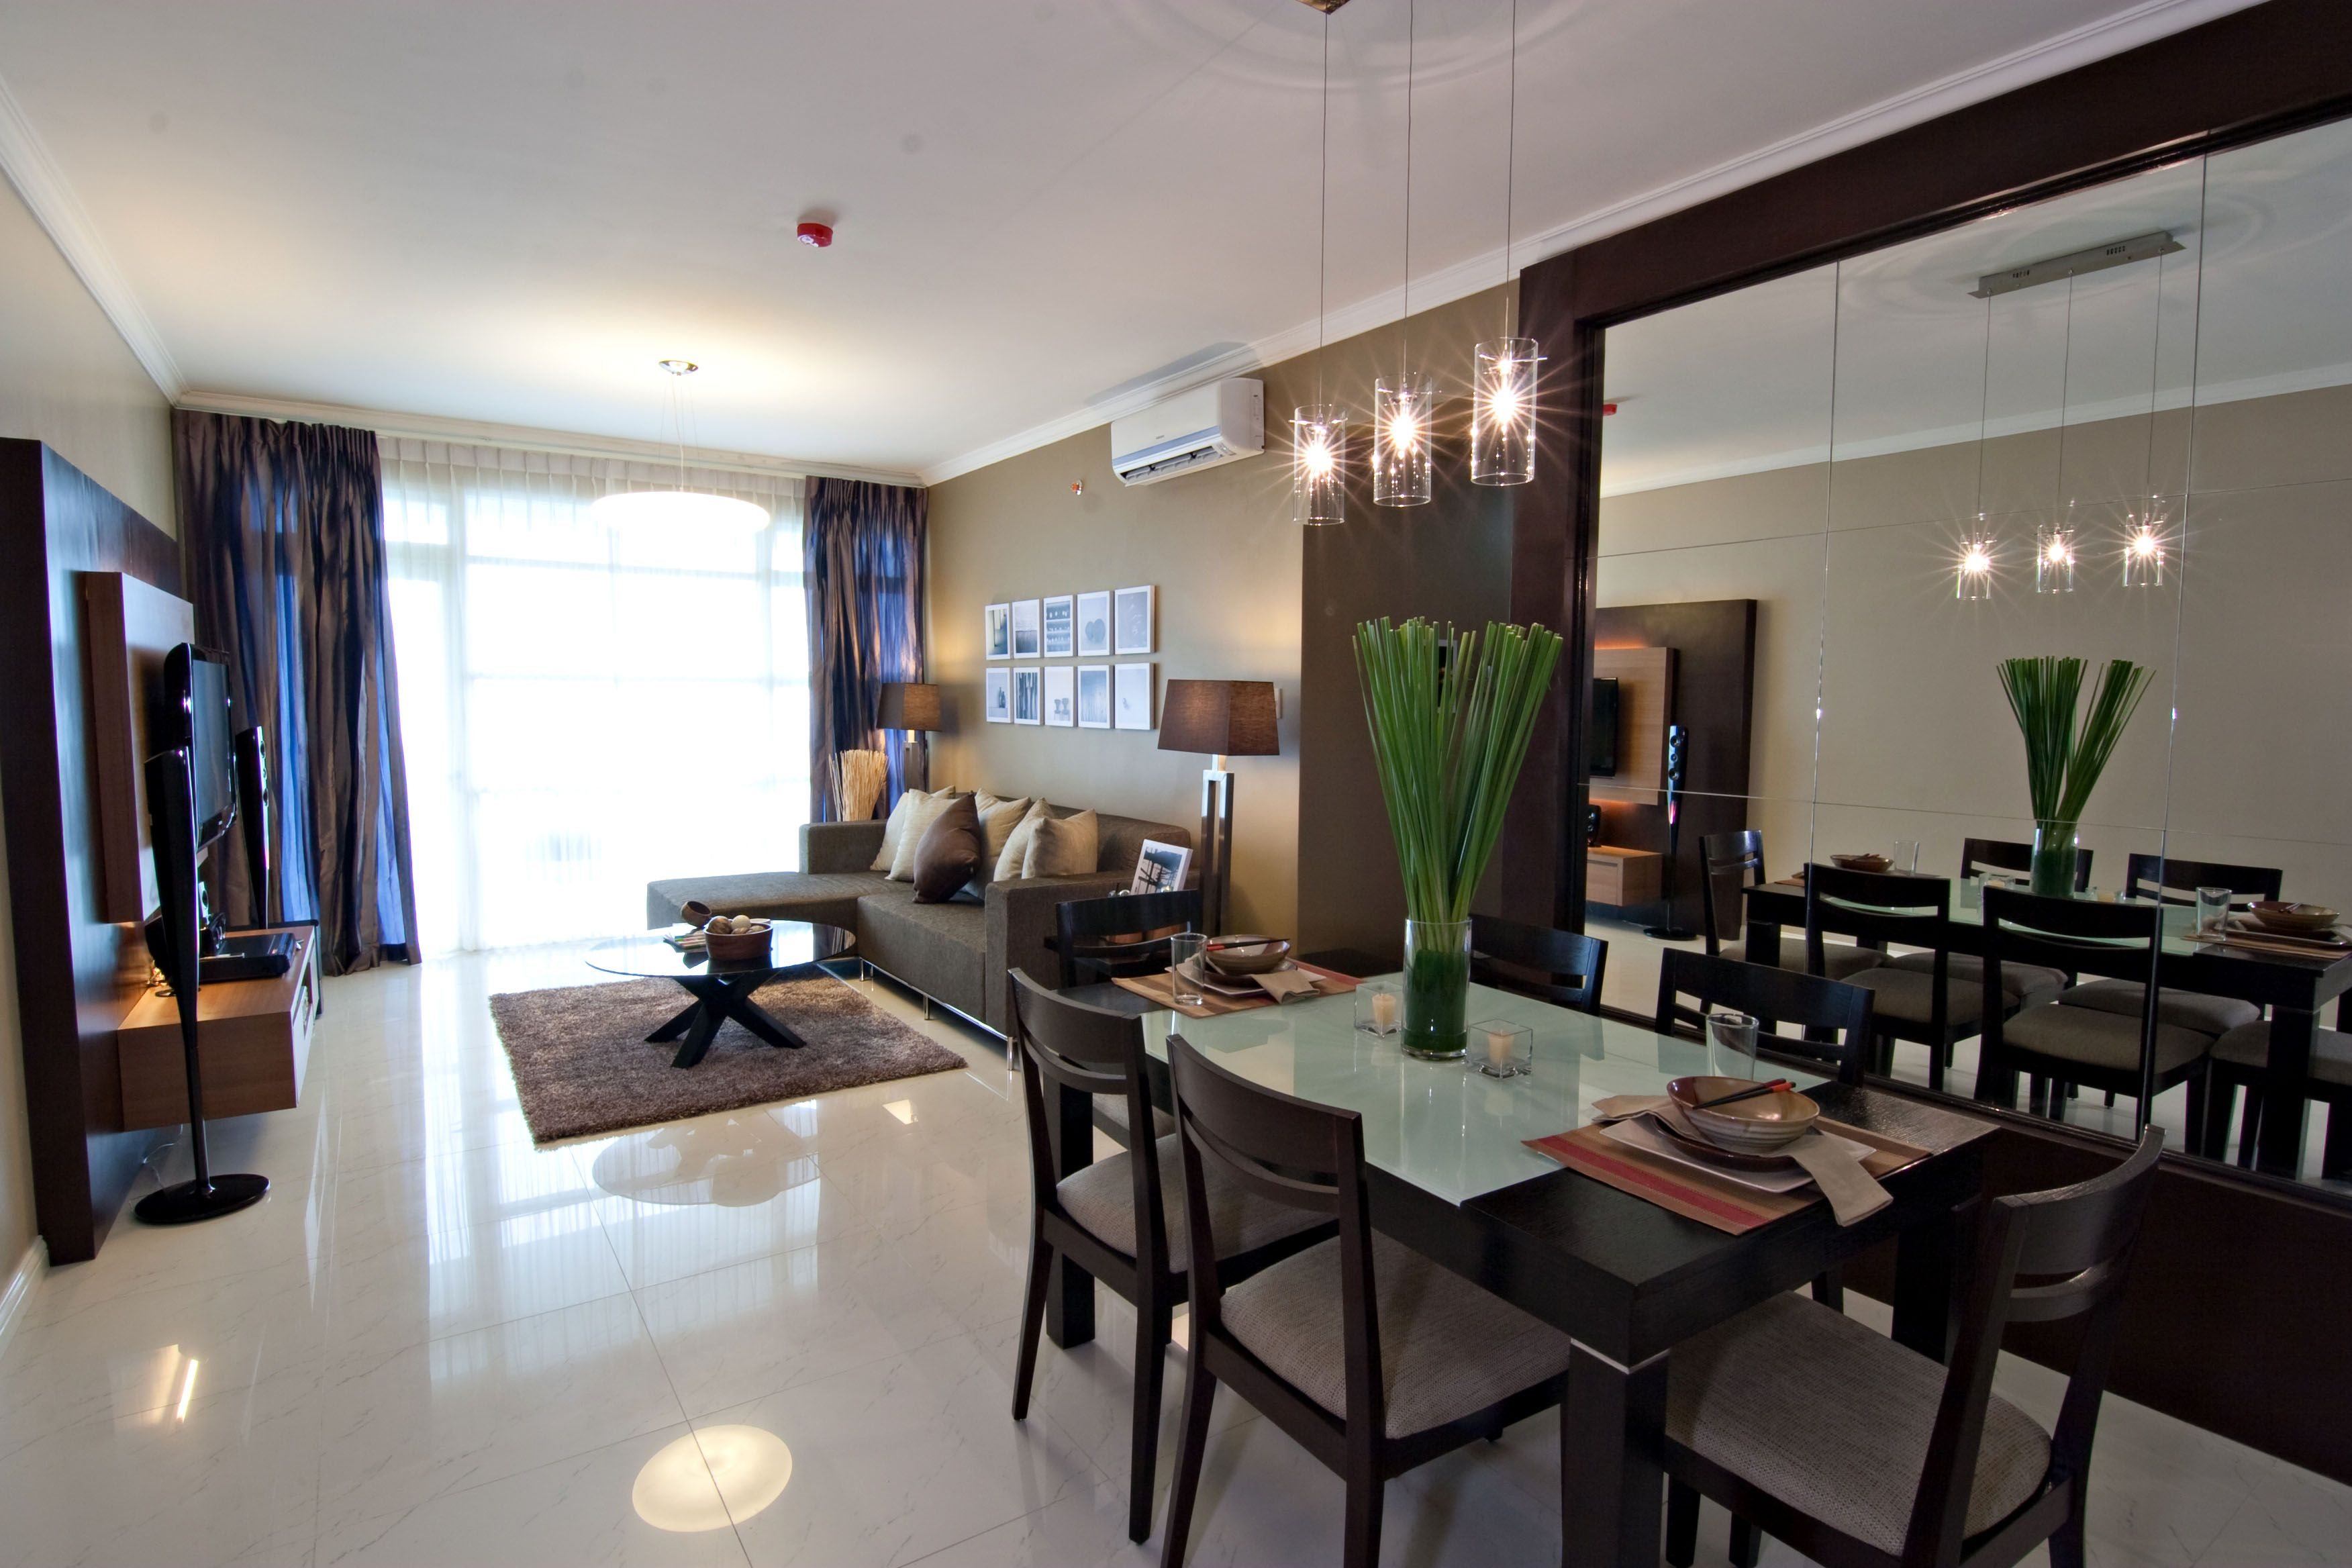 Citylights garden condominium by adrian del monte at for Living room interior design philippines